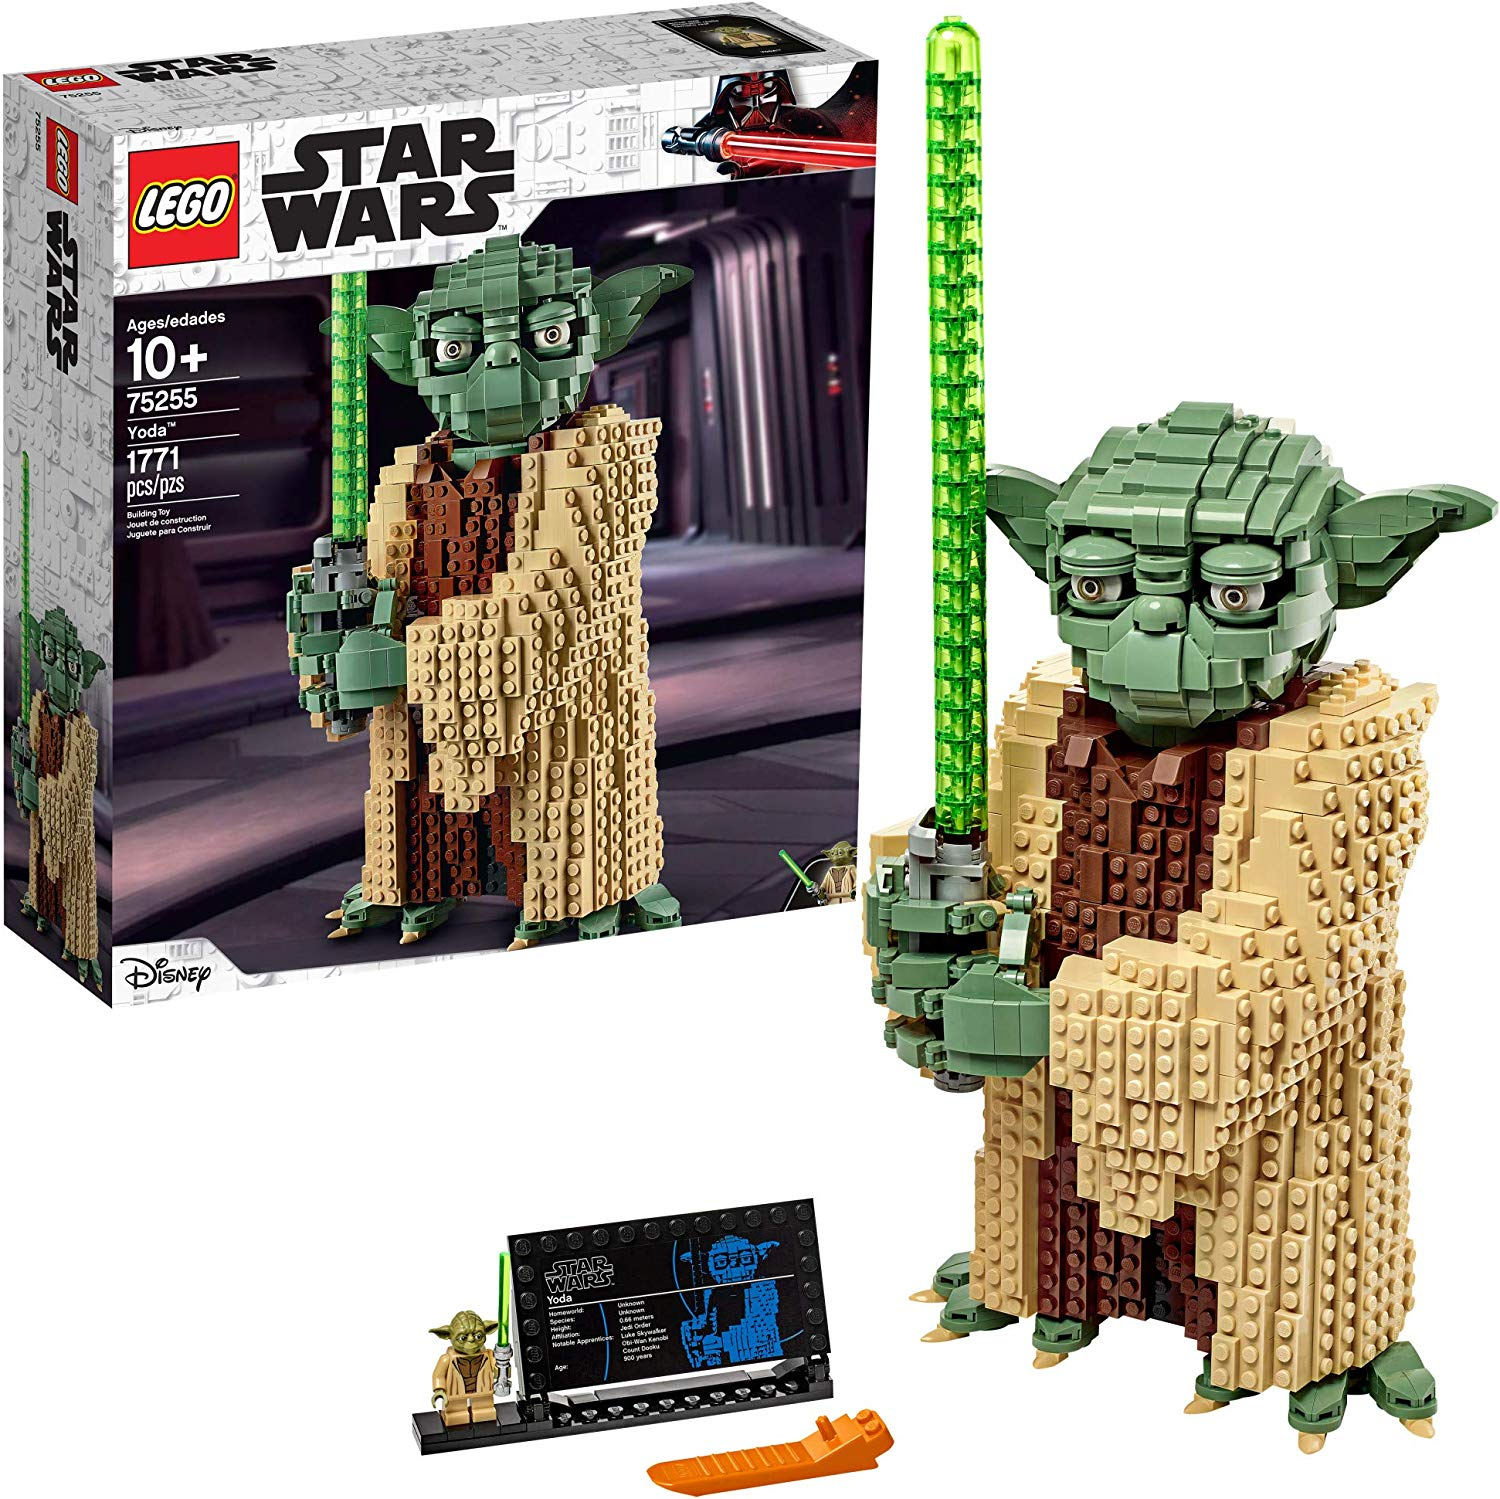 LEGO Star Wars: Attack of The Clones Yoda 75255 Yoda Building Model and Collectible Minifigure with Lightsaber, New 2019 (1,771 Pieces), @amazon.com or lego.com